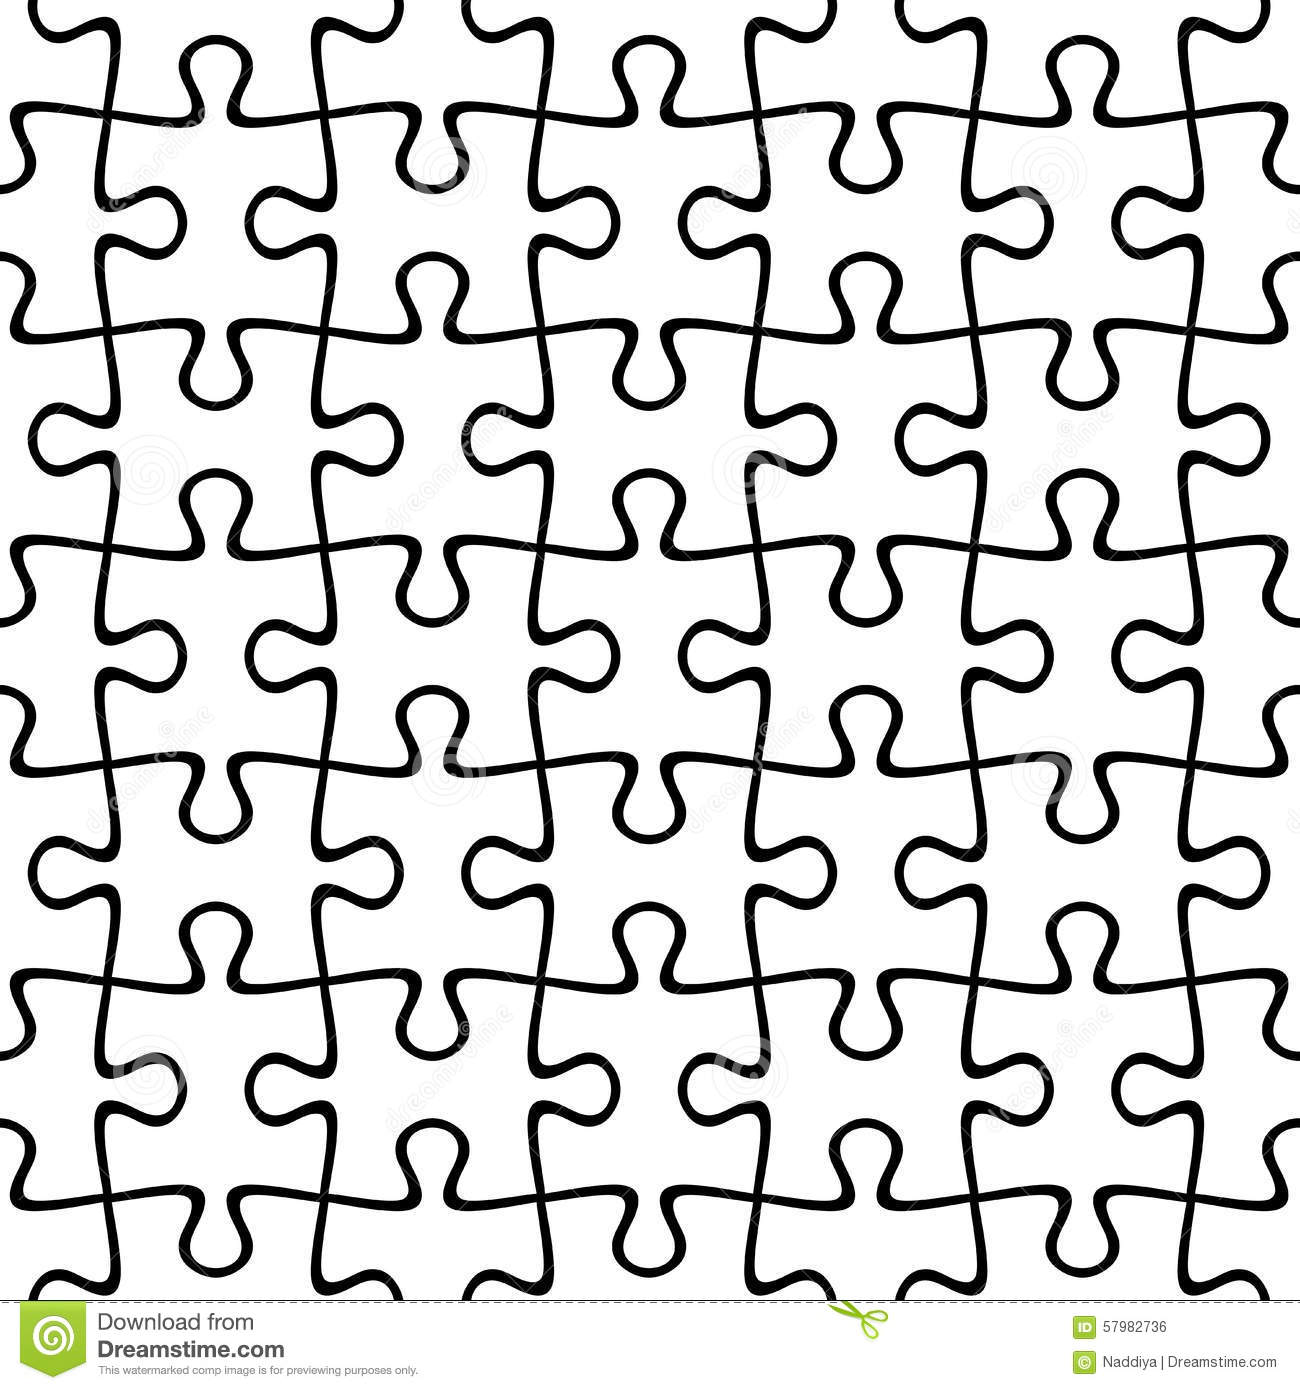 Jigsaw Puzzle Seamless Background Vector Illustration